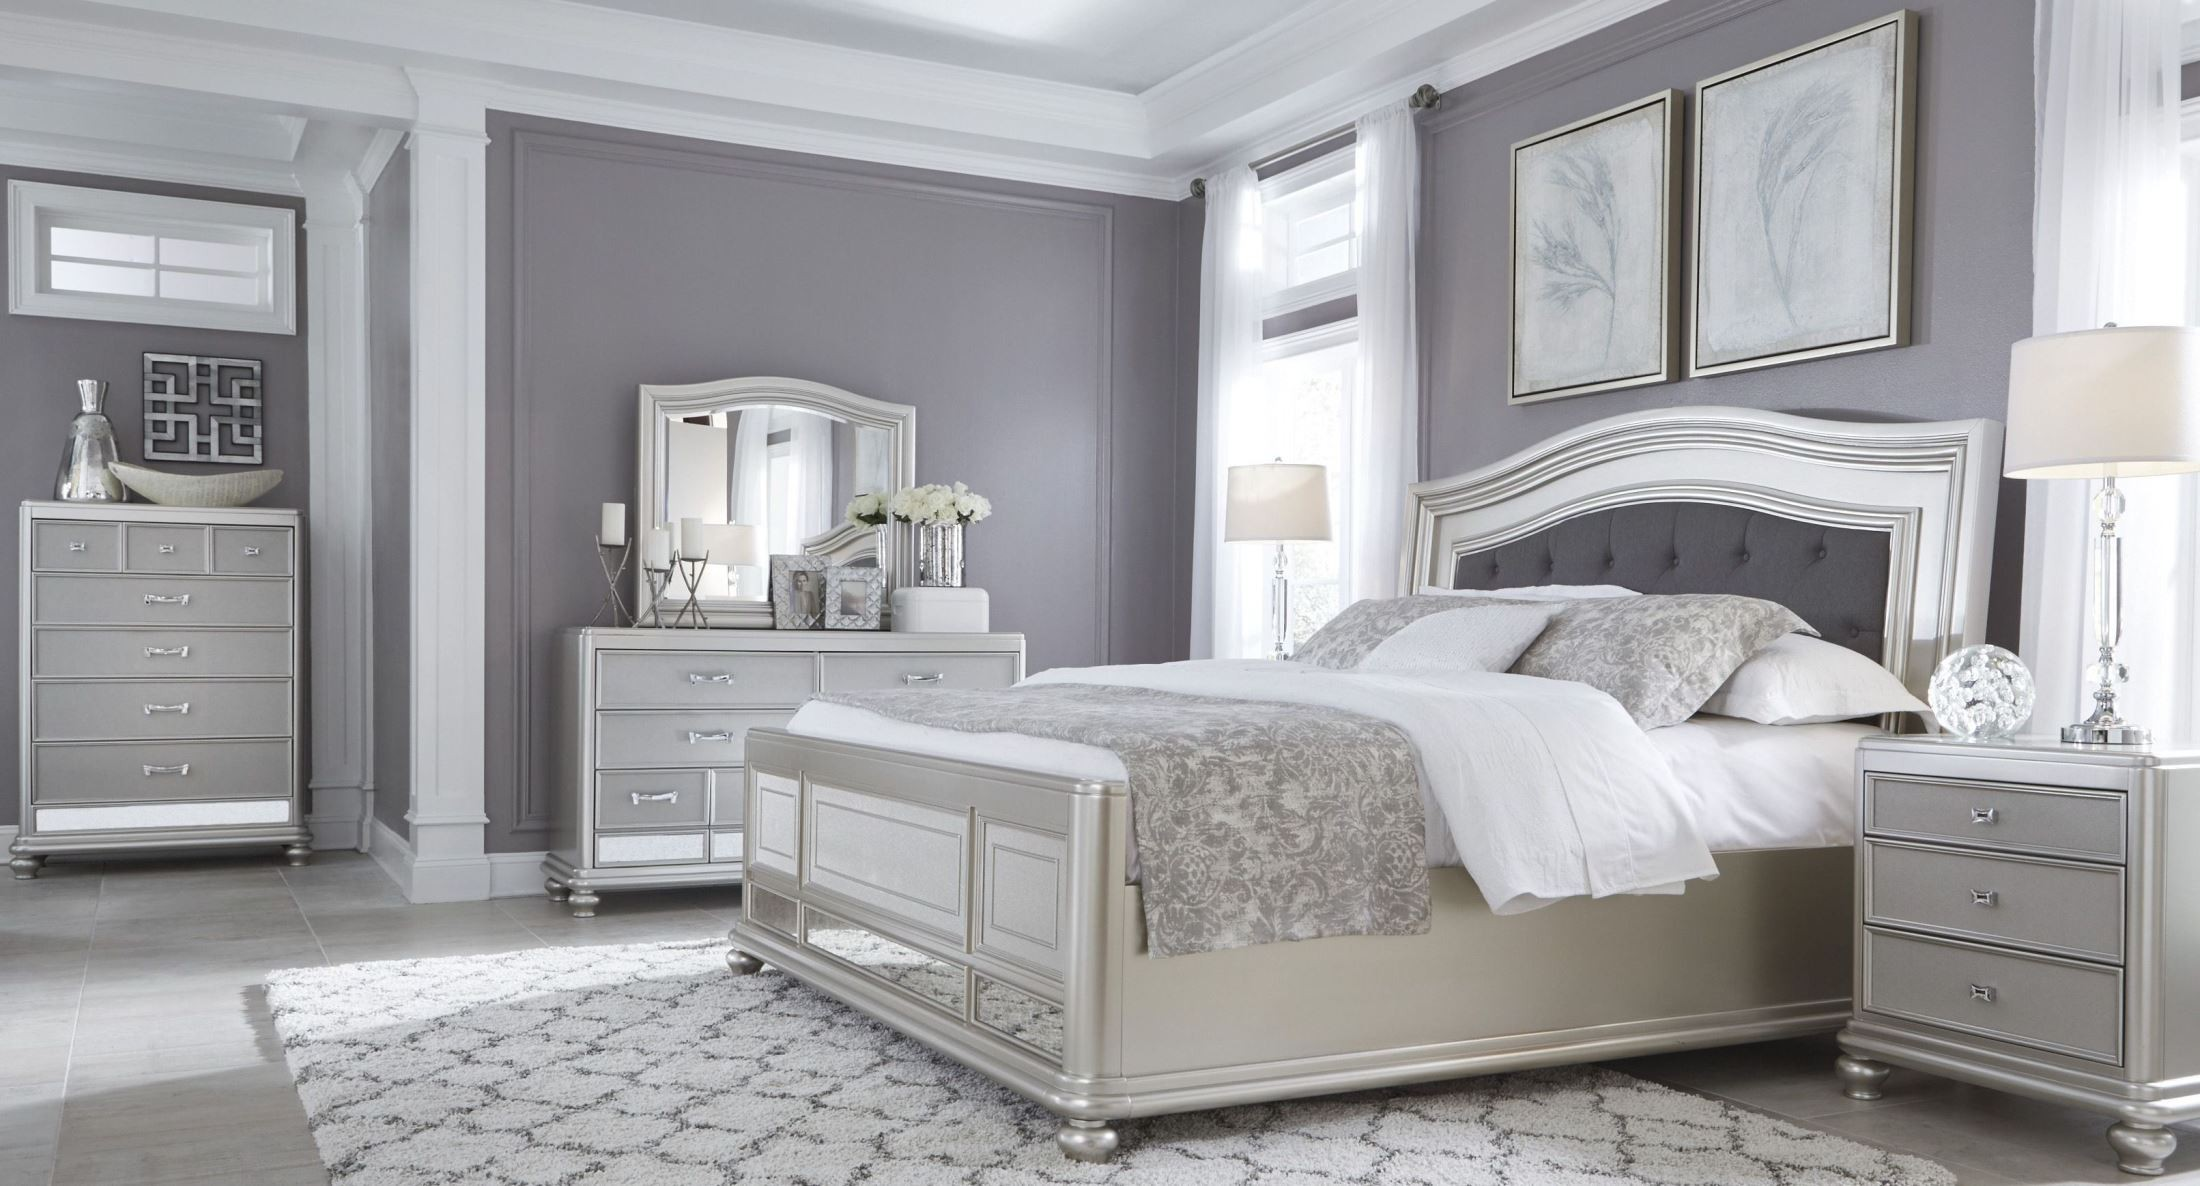 Rooms To Go Bedroom Sets Queen Coralayne Silver Bedroom Set From Ashley B650 157 54 96